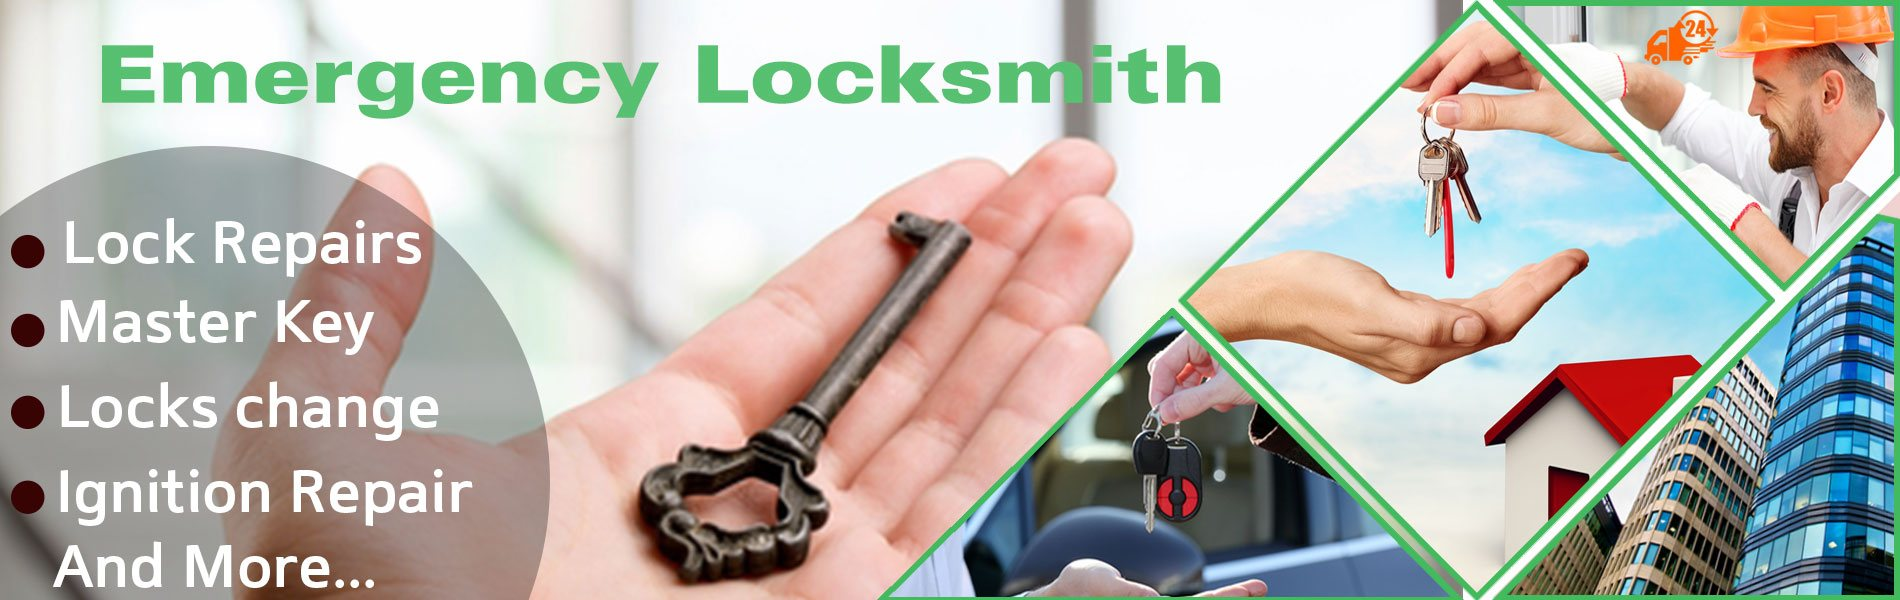 Lock Safe Services Bronx, NY 718-304-2931